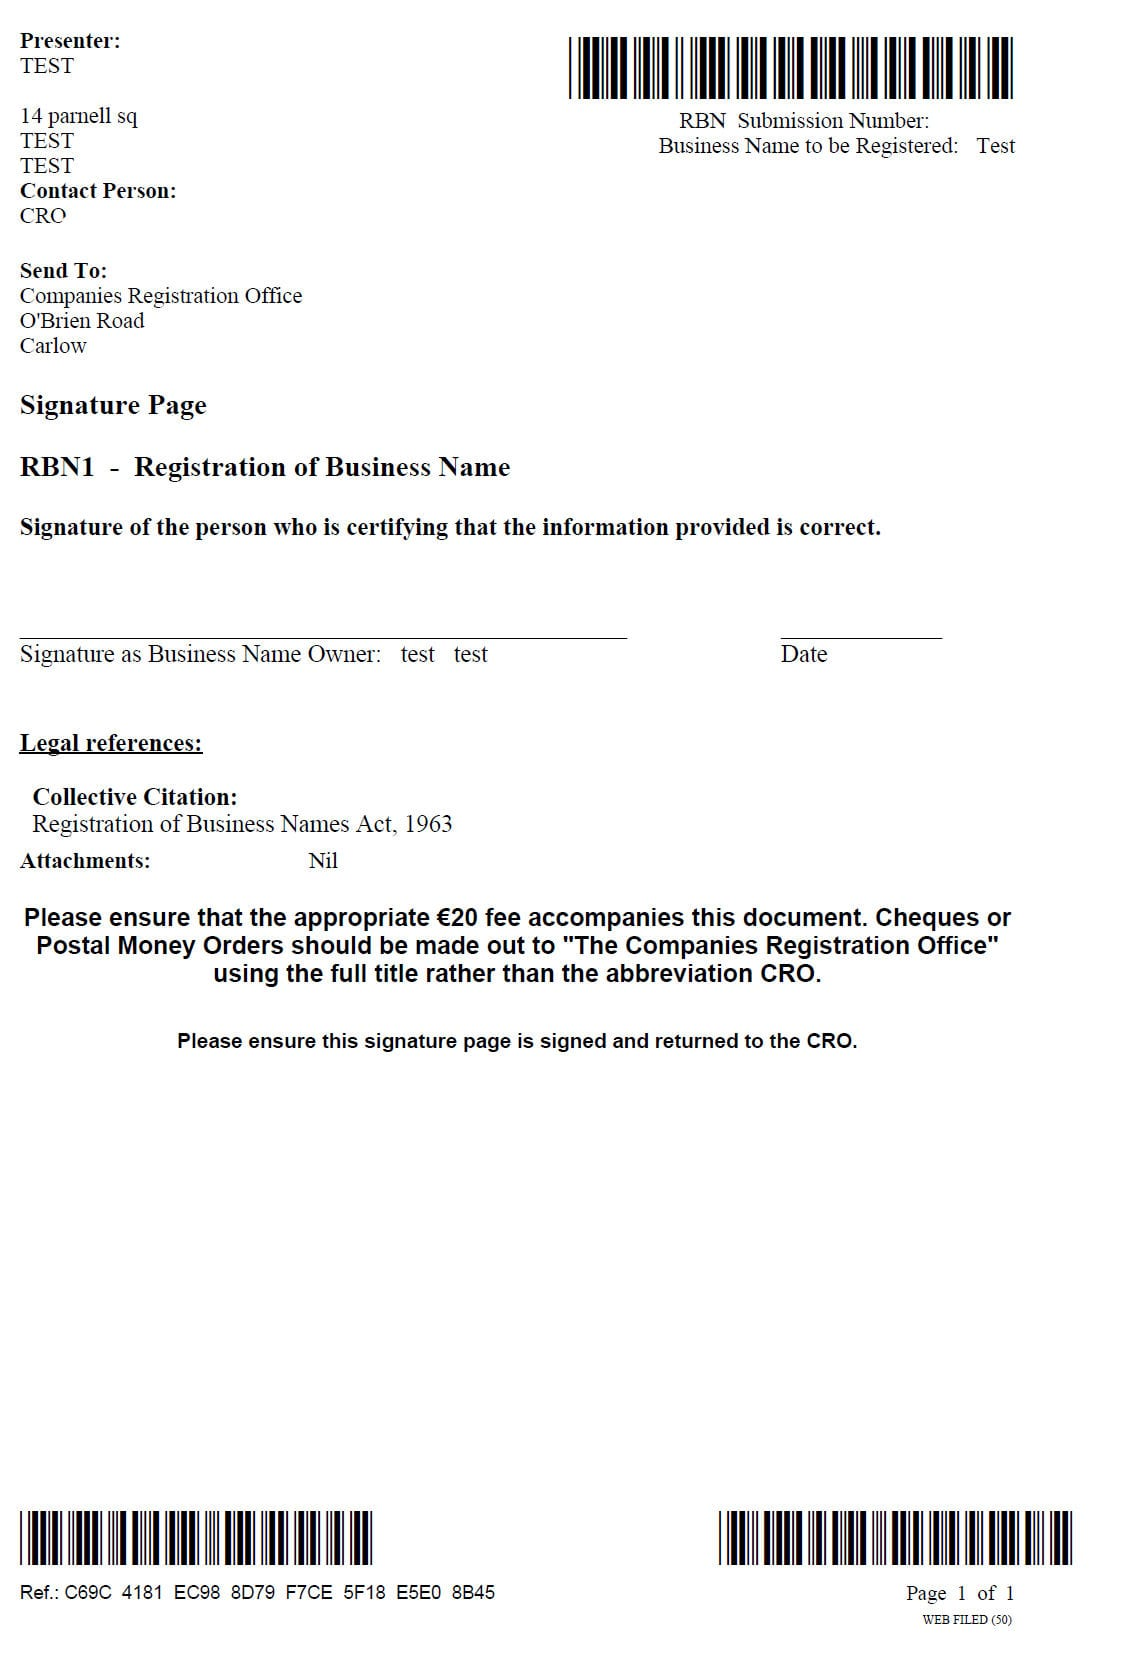 Illinois Business Registration Application Business Registration Application Form Spreadsheet Templates for Busines Spreadsheet Templates for Busines Oklahoma Business Registration Application